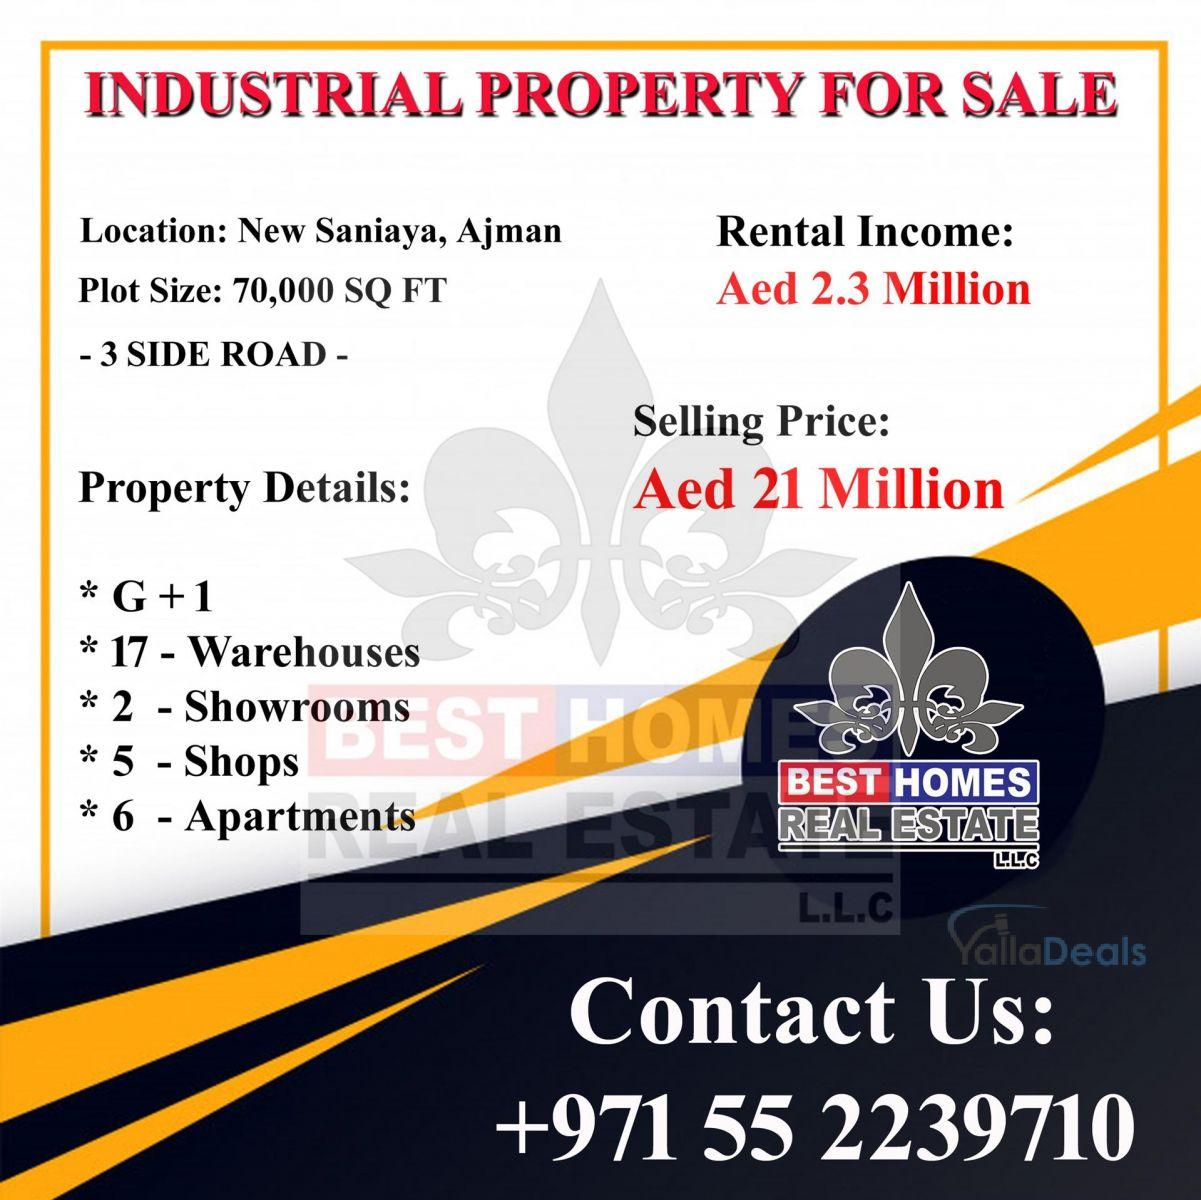 Commercial Property for Sale in New Industrial Area, Ajman